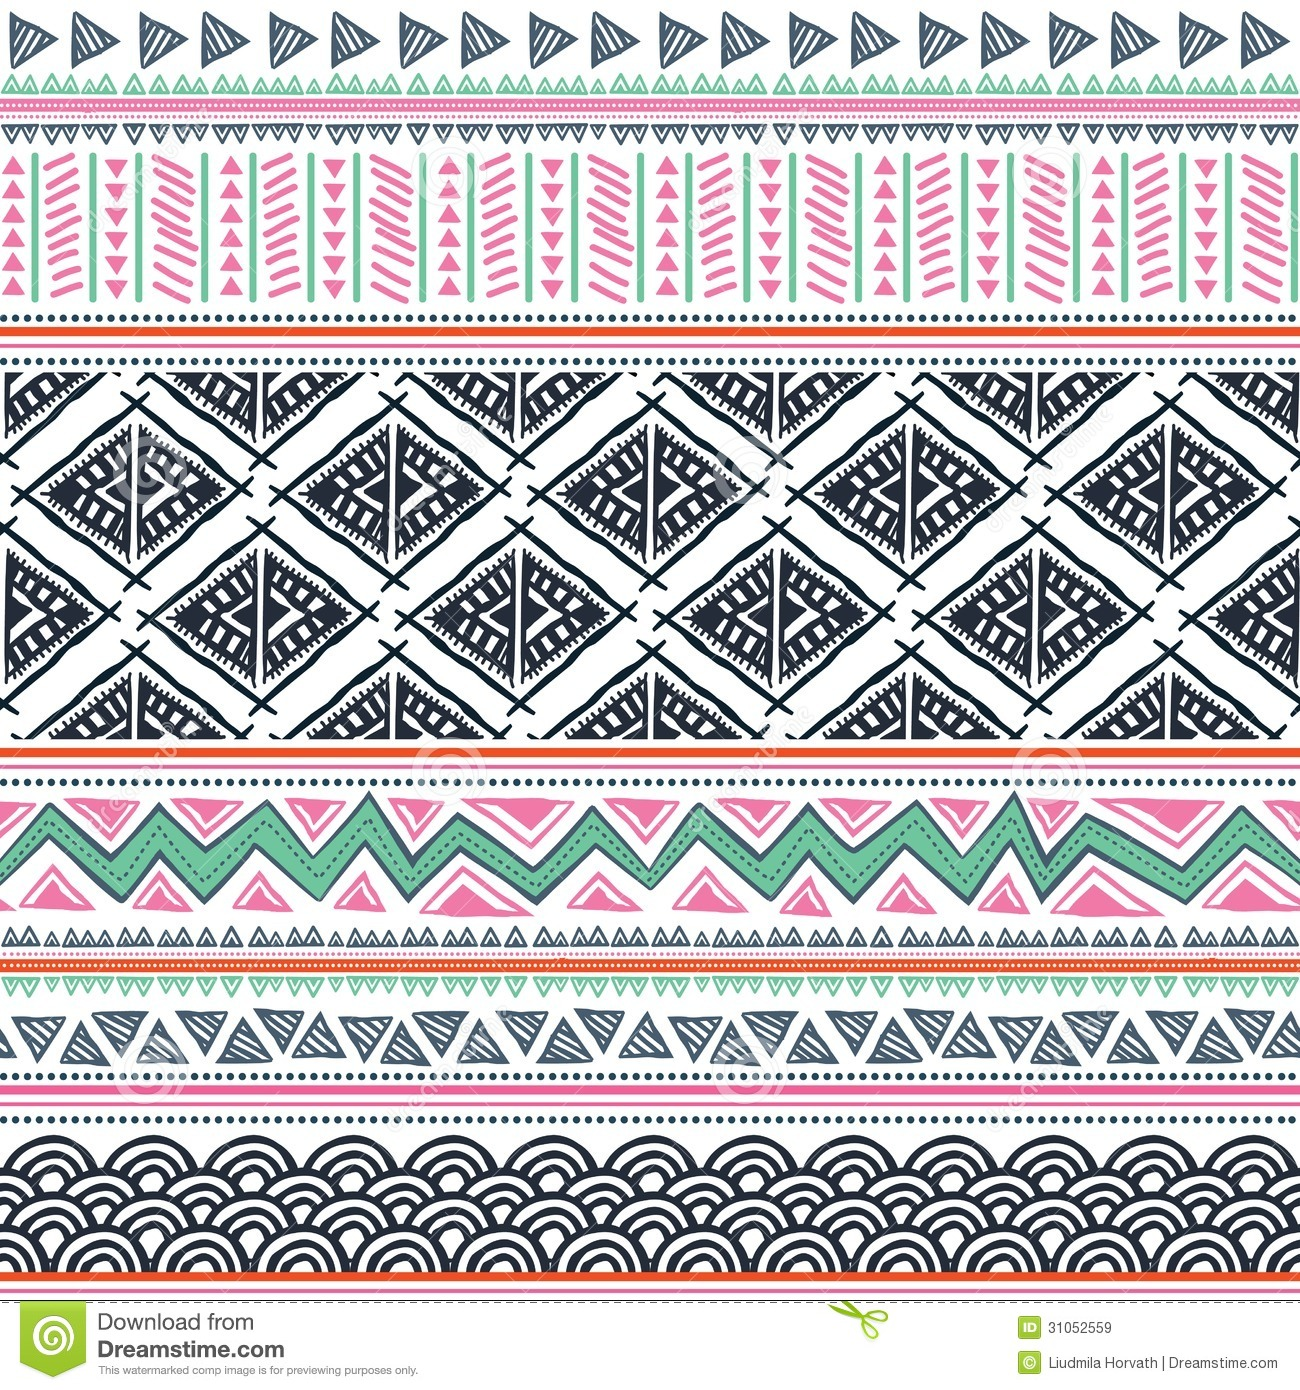 5014 free designs tribal - photo #45